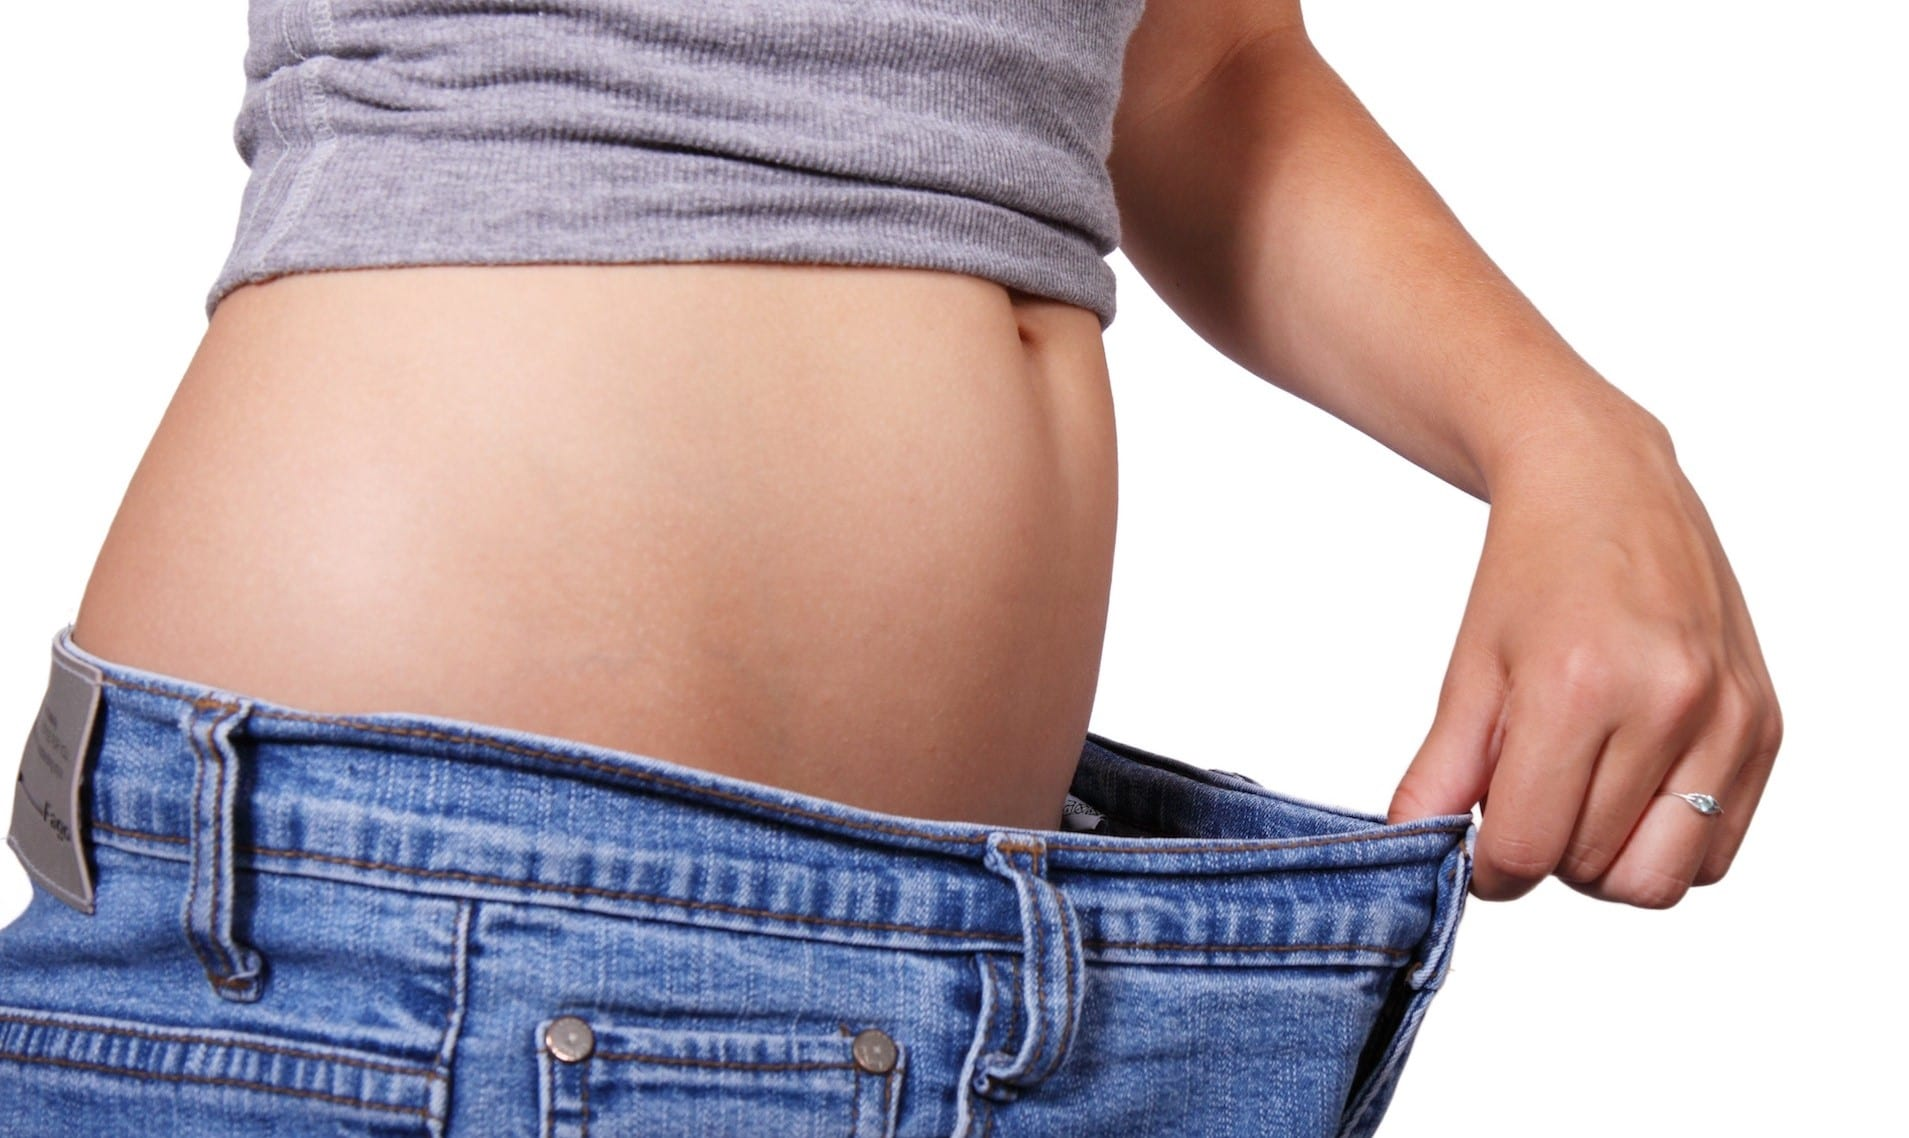 Pounds Away from a Beach Body? Genesis Medical Clinic Can Help You Nail that Summer Look